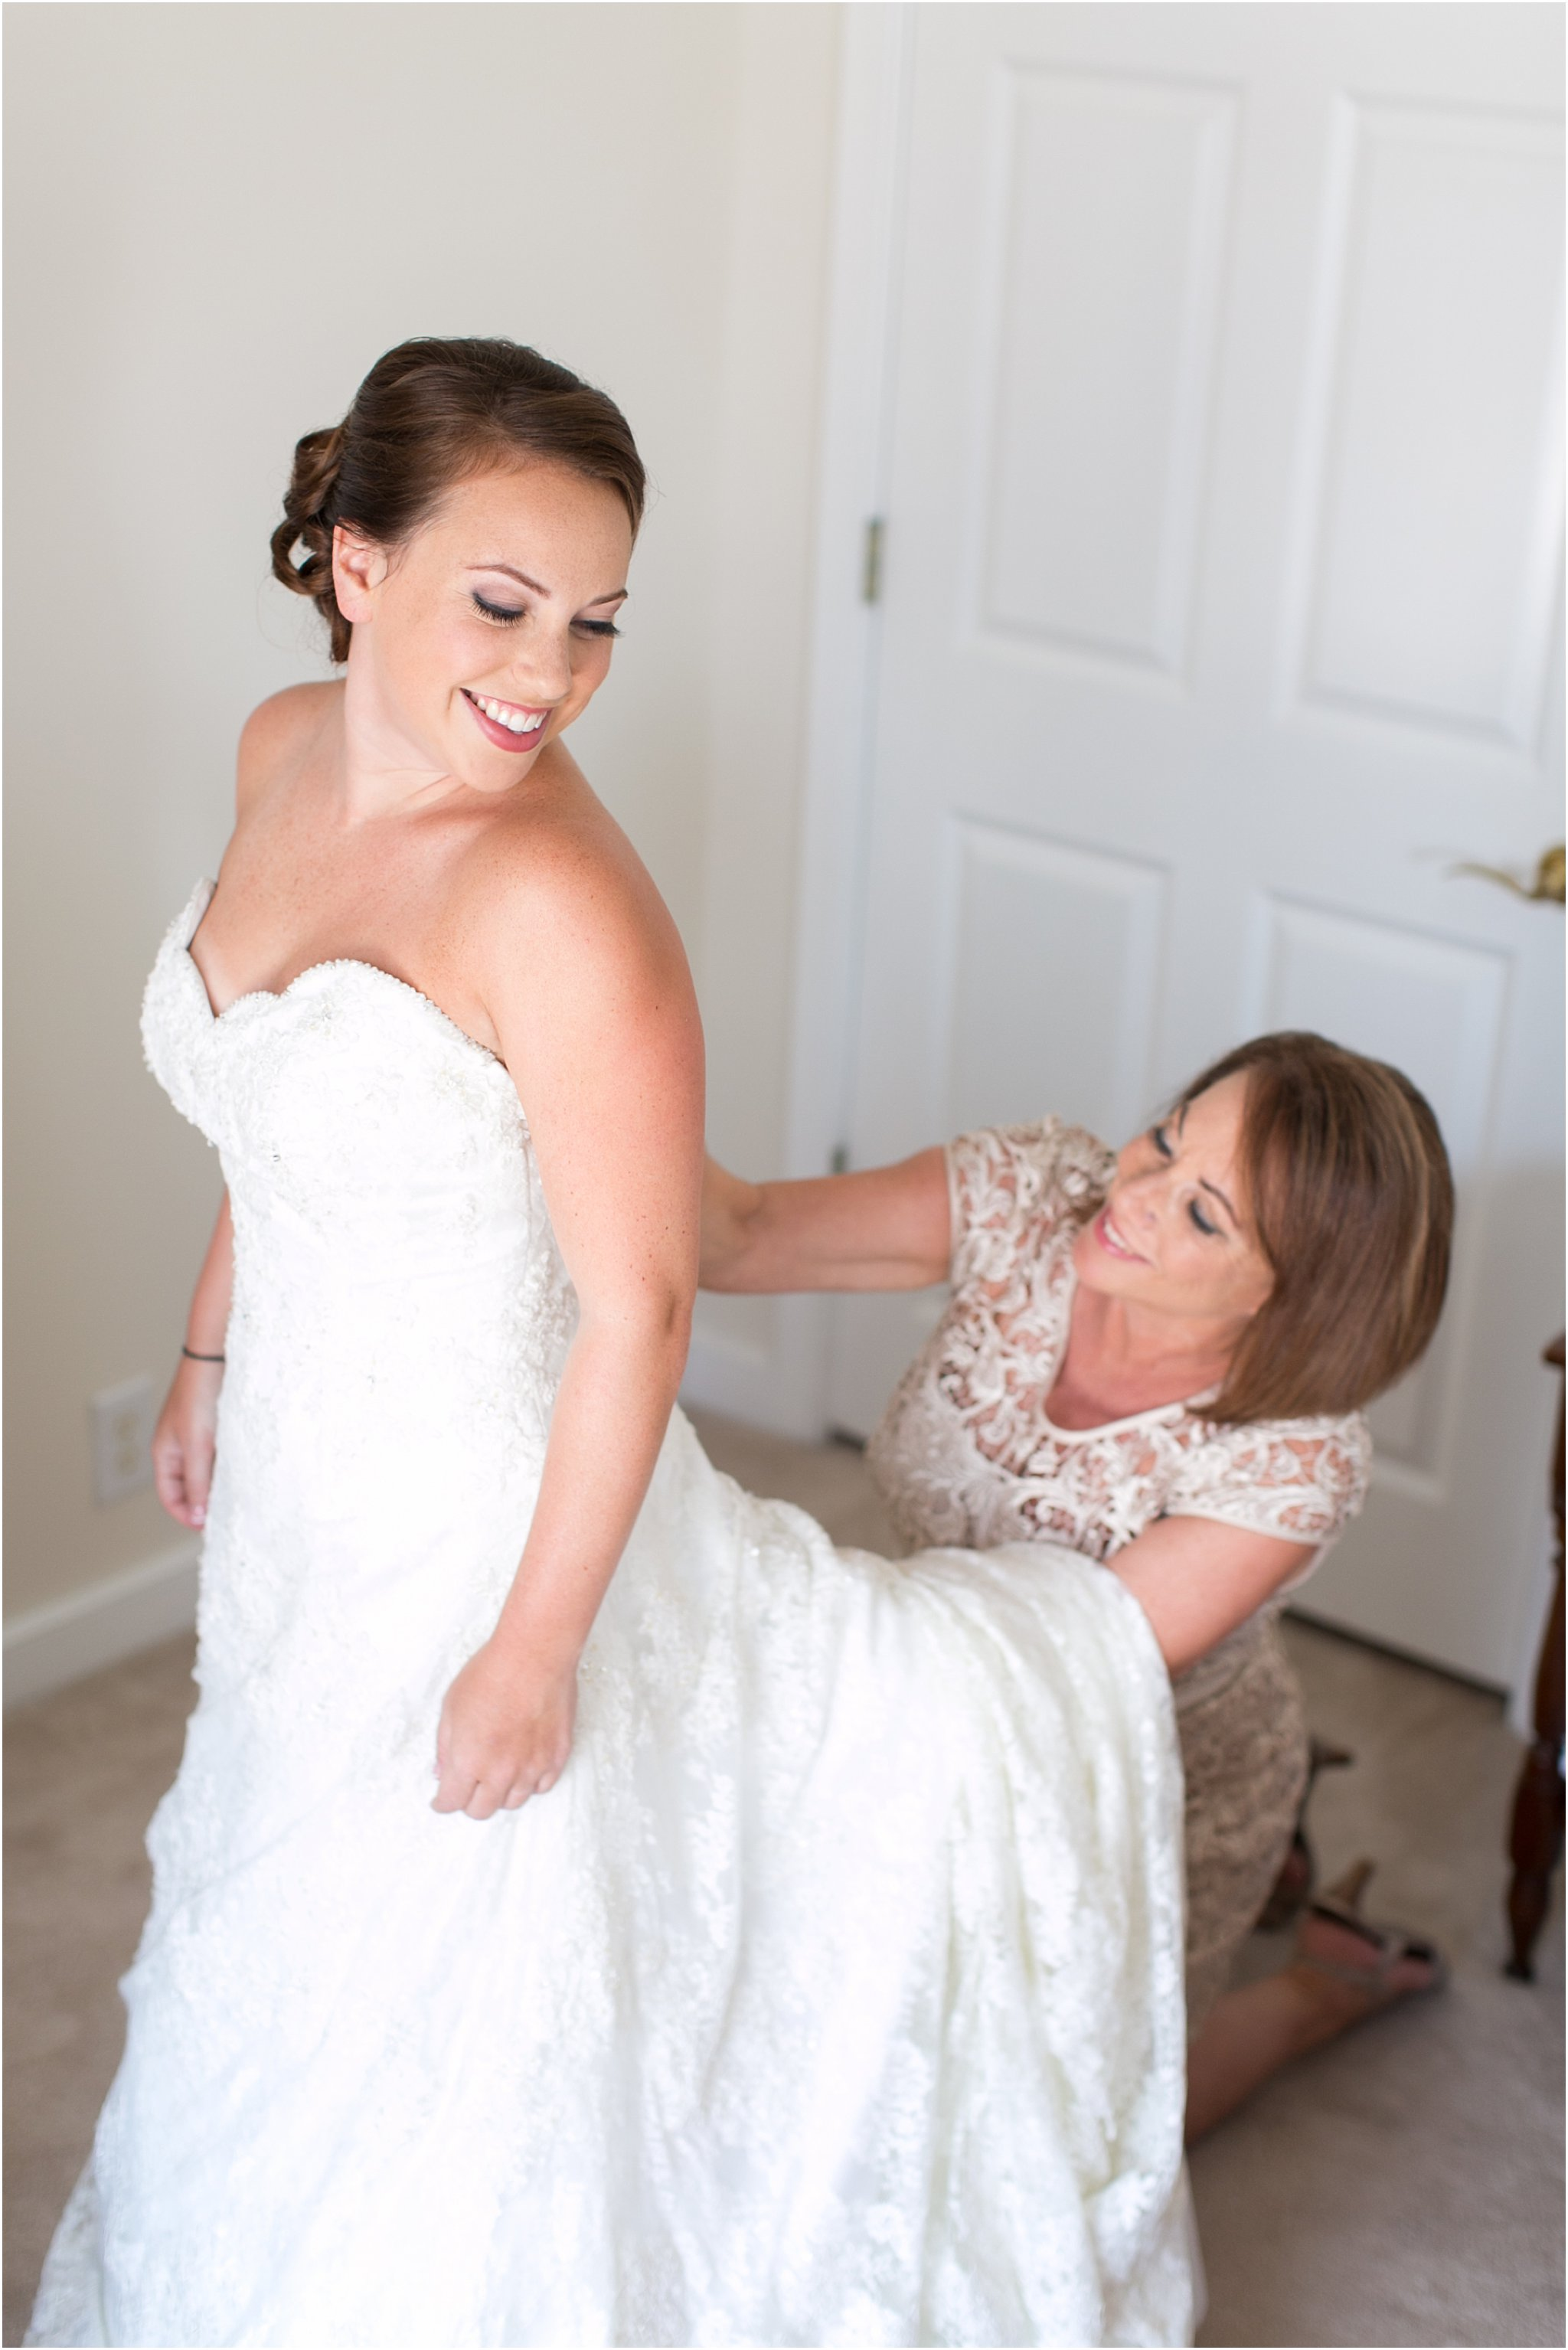 jessica_ryan_photography_wedding_photography_virginiabeach_virginia_candid_authentic_wedding_portraits_marina_shores_yacht_club_chesapeake_bay_1823